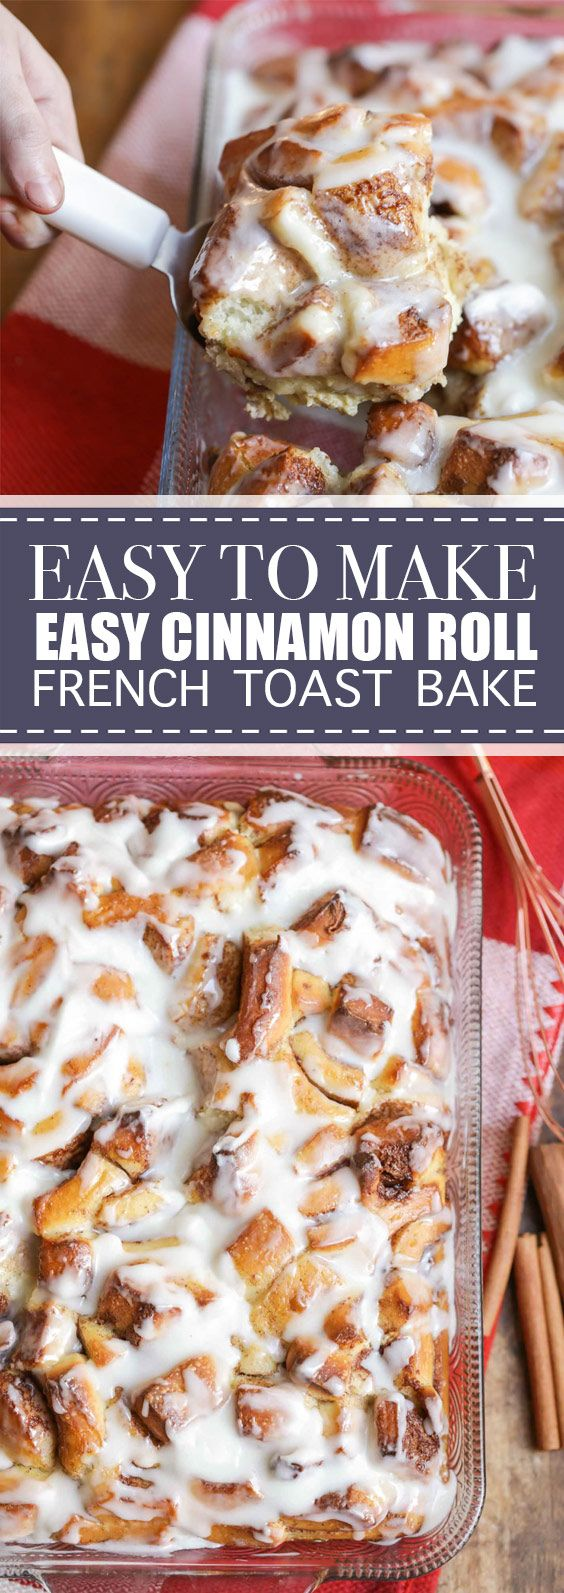 Easy Cinnamon Roll French Toast Bake | This overnight Cinnamon Roll French Toast Bake gives you all the ooey gooey goodness of warm cinnamon rolls, with the ease of an overnight breakfast casserole. It's the perfect breakfast or brunch item during the holidays! #cinnamonroll #frenchtoast #bake | delicioushealthy.club #cinnamonrollturkey